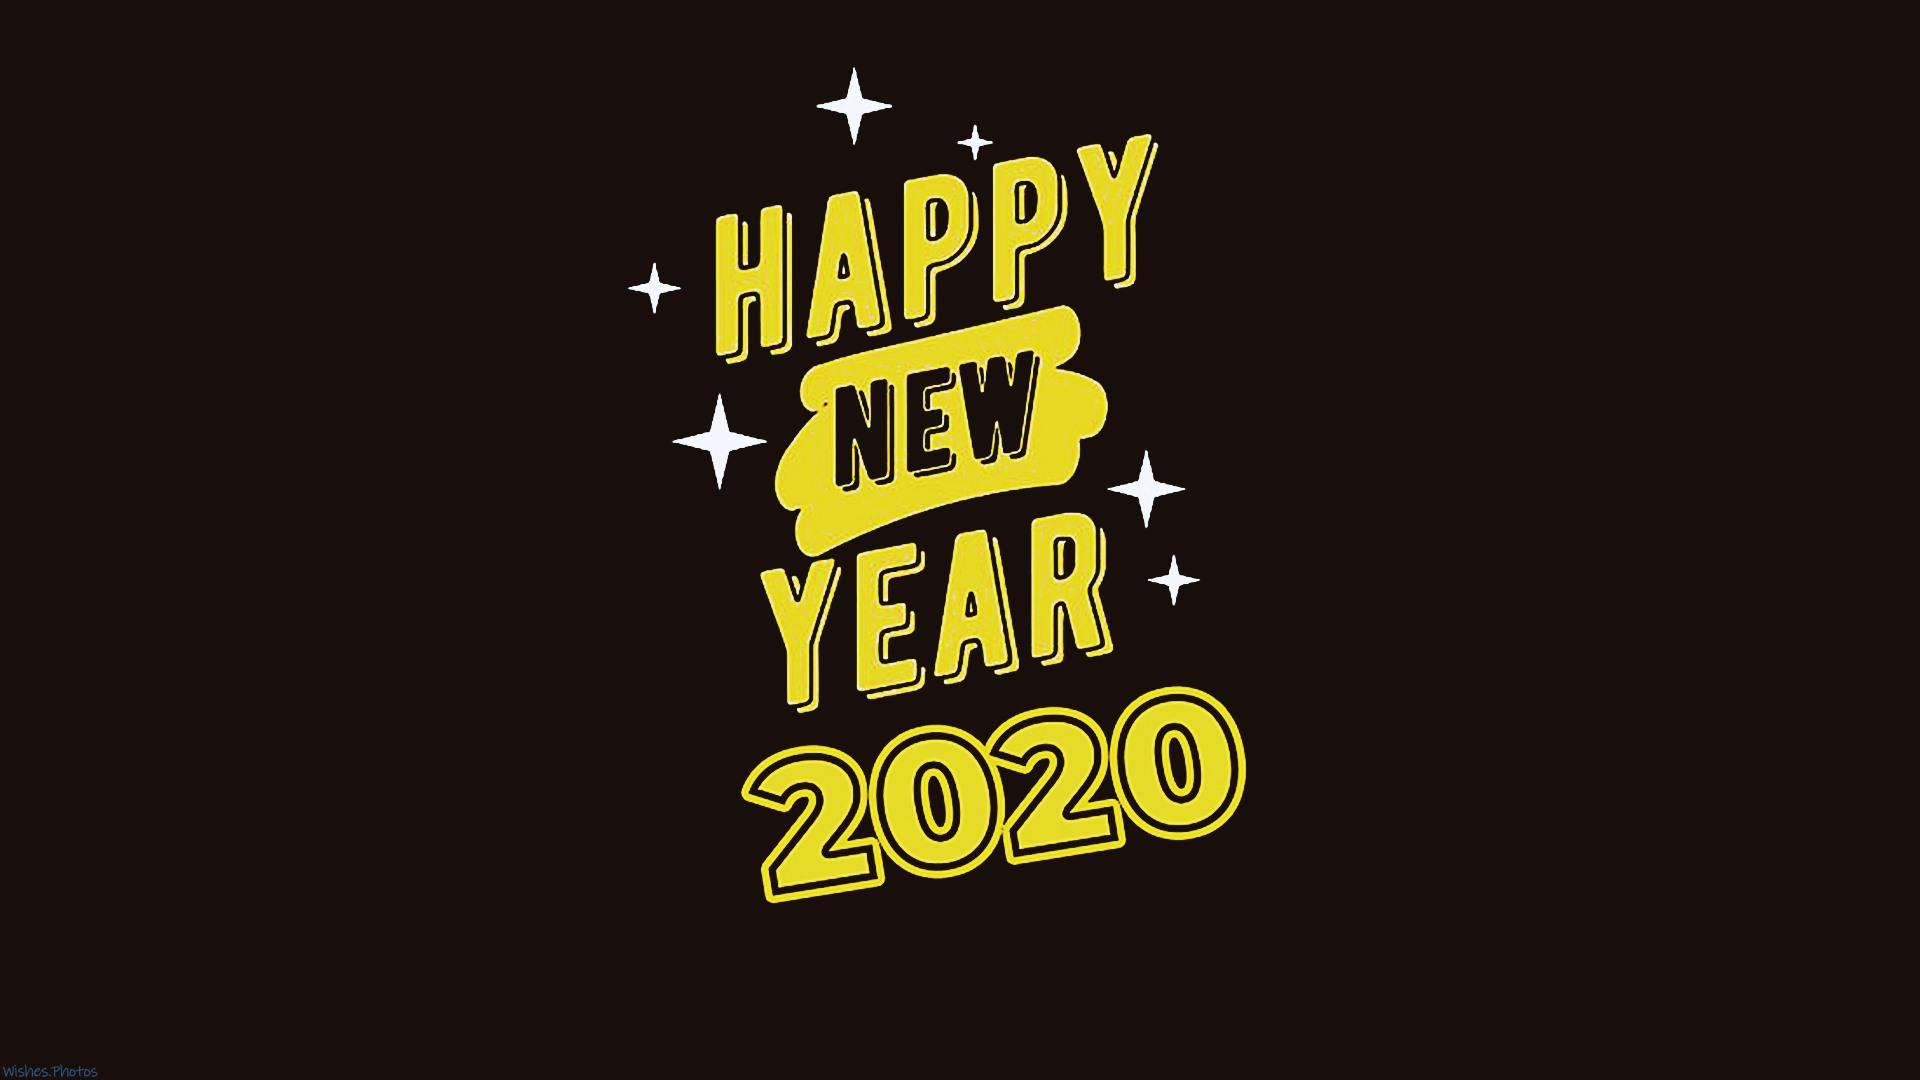 Happy New Year 2020 Full HD Wallpapers Download For PC   WishesPhotos 1920x1080